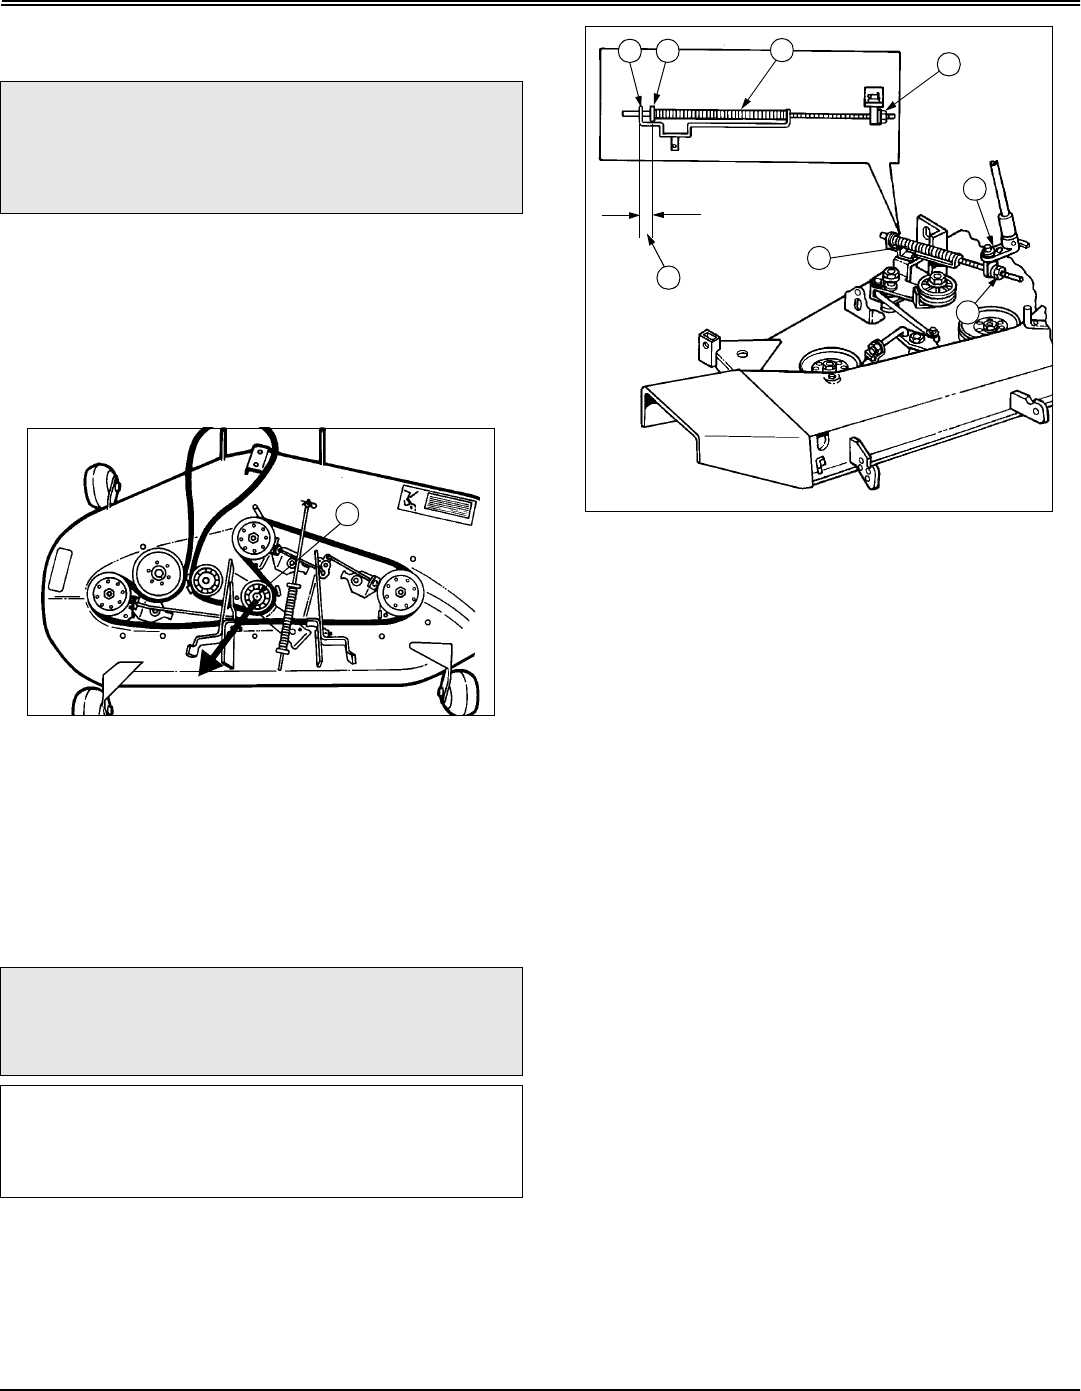 b5e9d01c 9017 4e04 82a5 0d387216d6f2 bg23 page 35 of scotts lawn mower s2546 user guide manualsonline com scotts s1642 wiring diagram at mr168.co